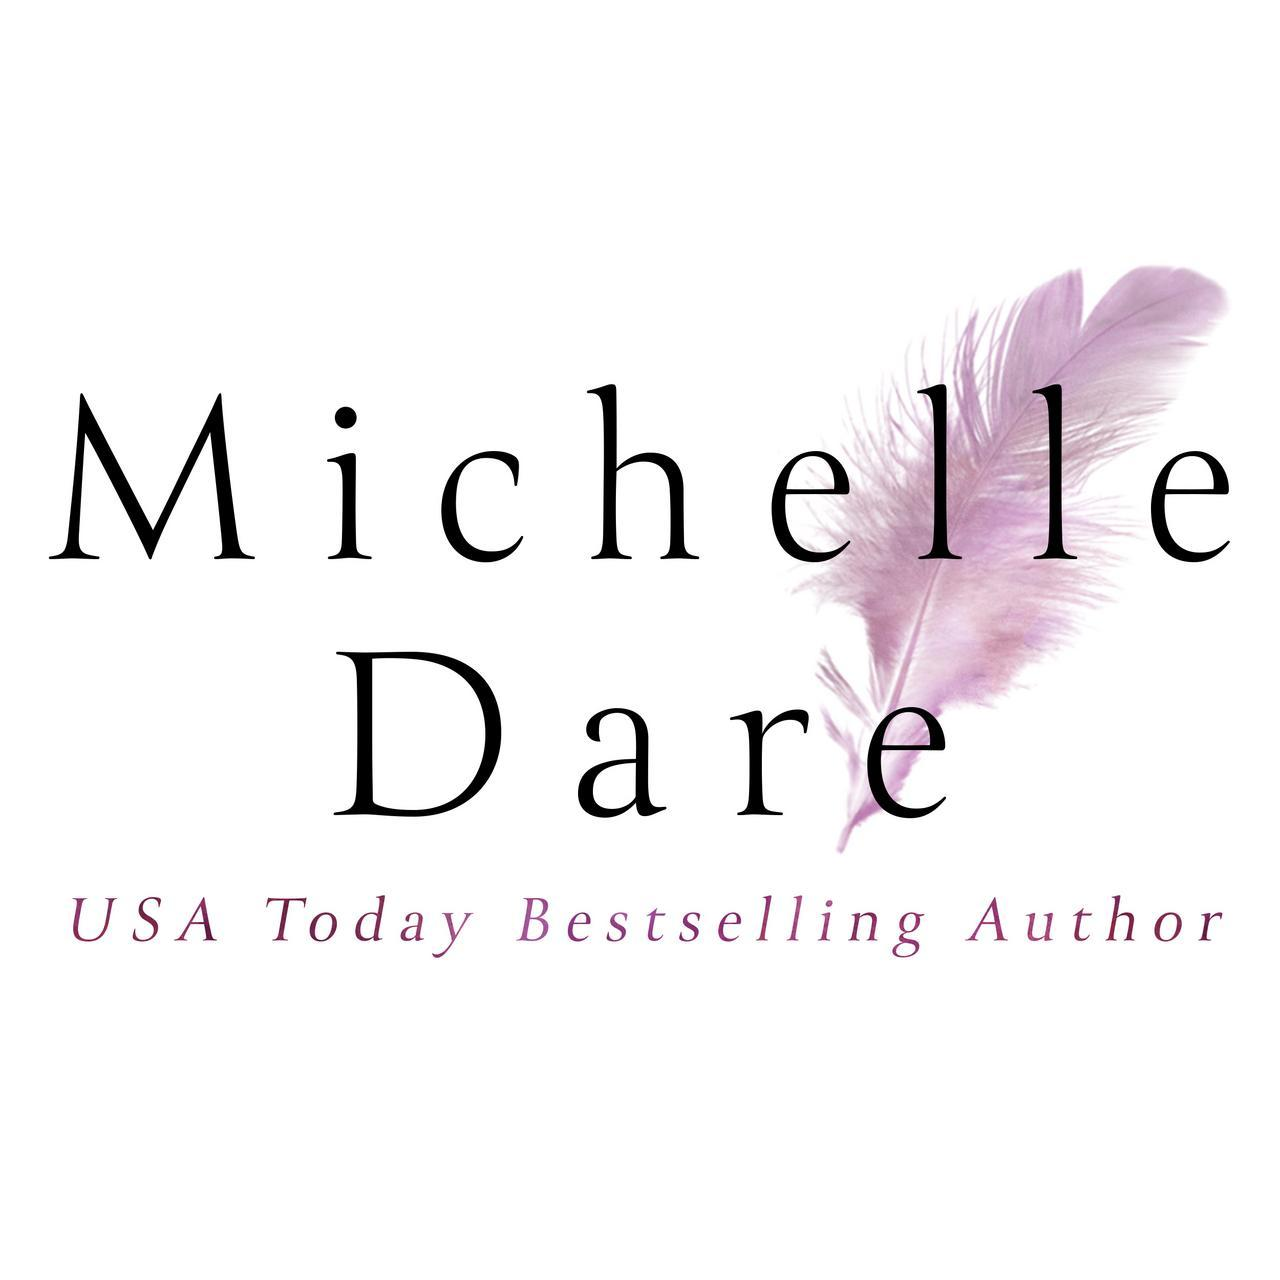 Michelle dare profile pic